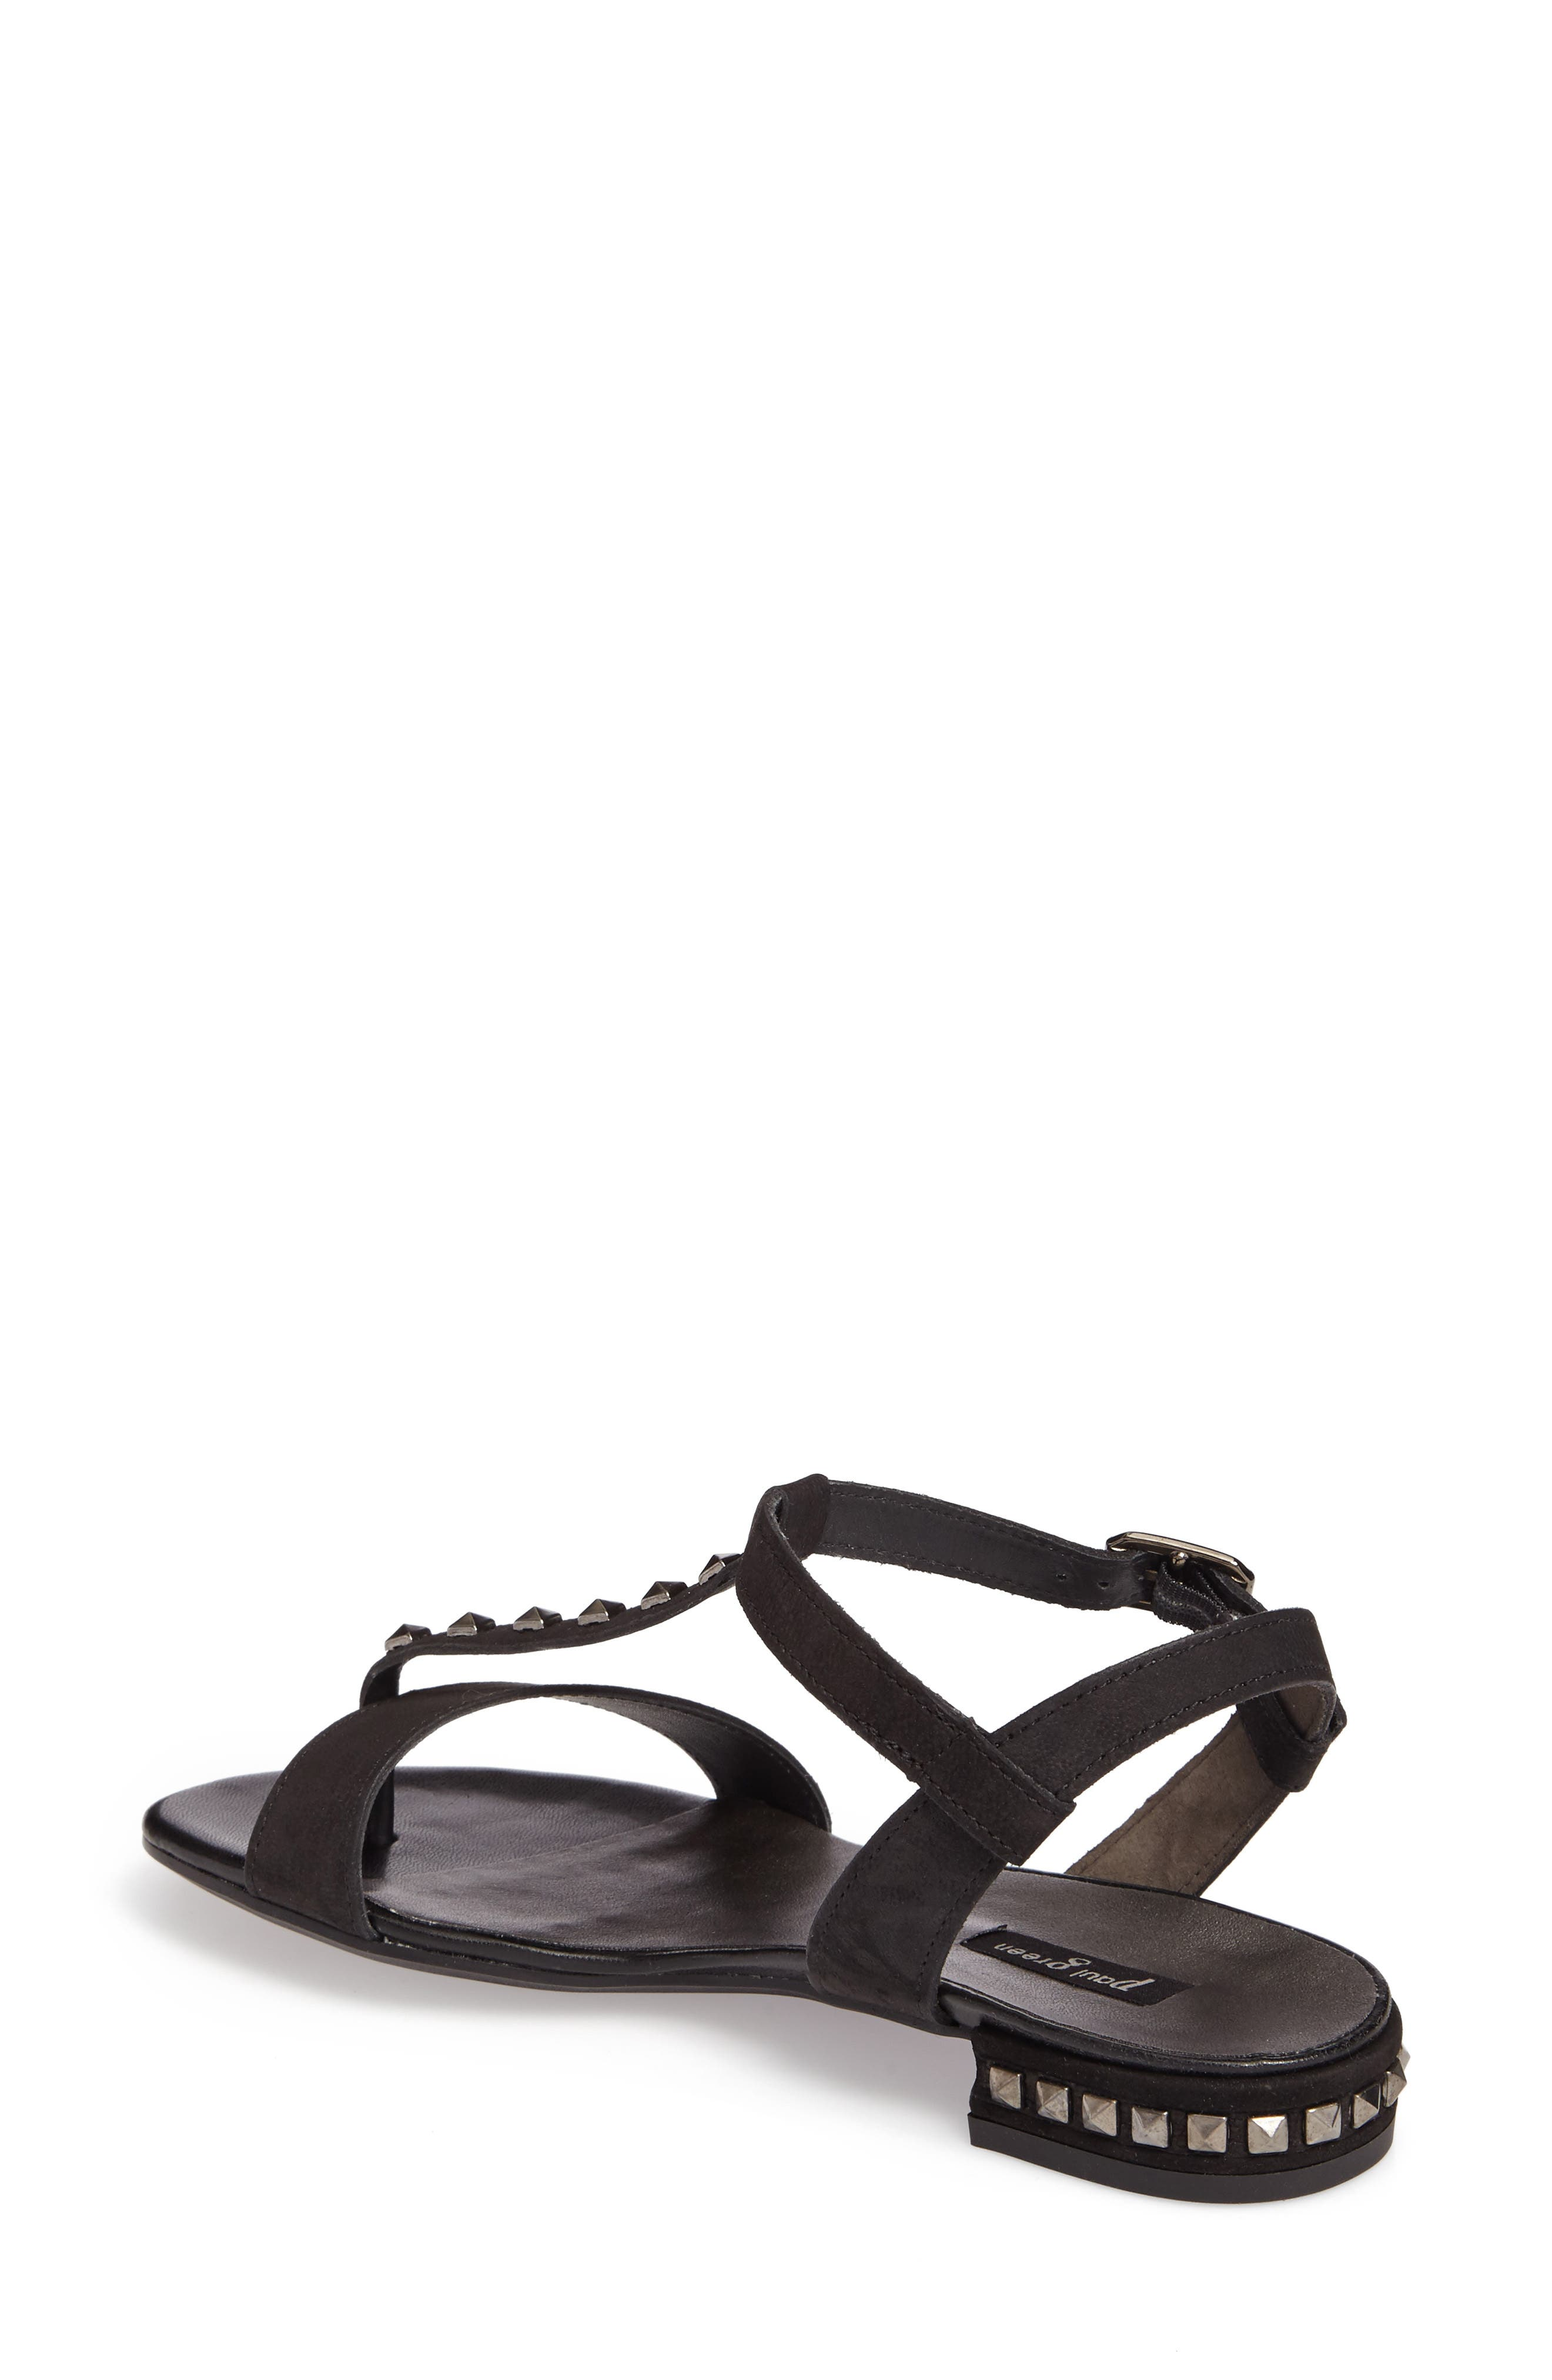 Nepal T-Strap Sandal,                             Alternate thumbnail 3, color,